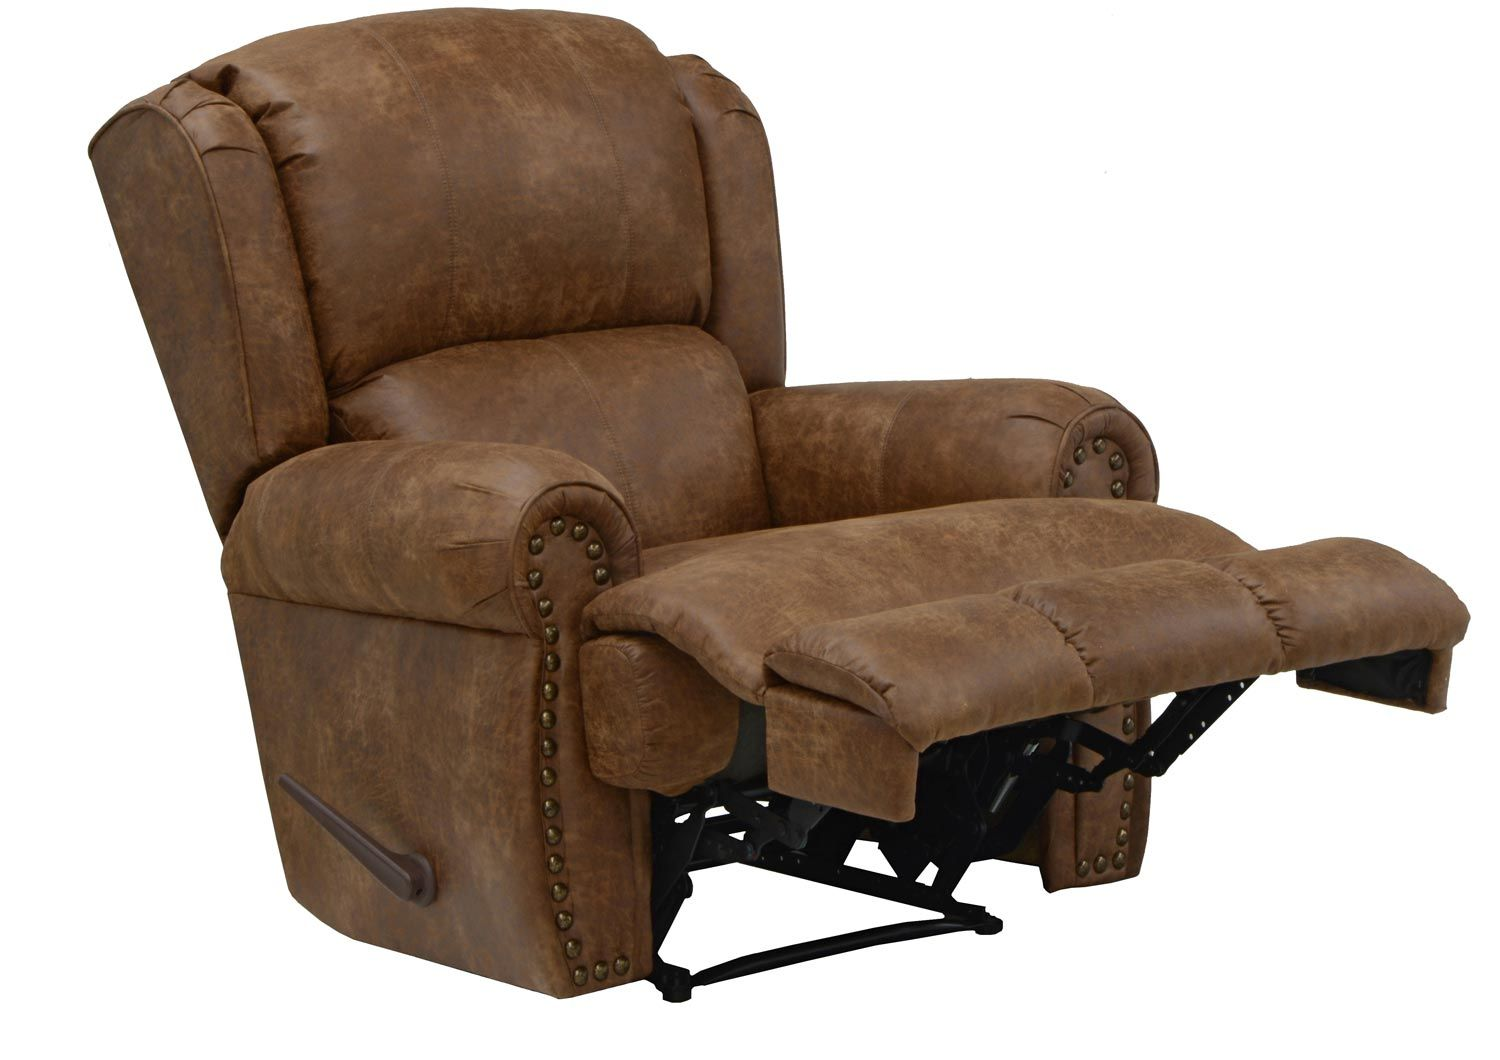 Catnapper Dempsey Bonded Leather Deluxe Lay Flat Recliner